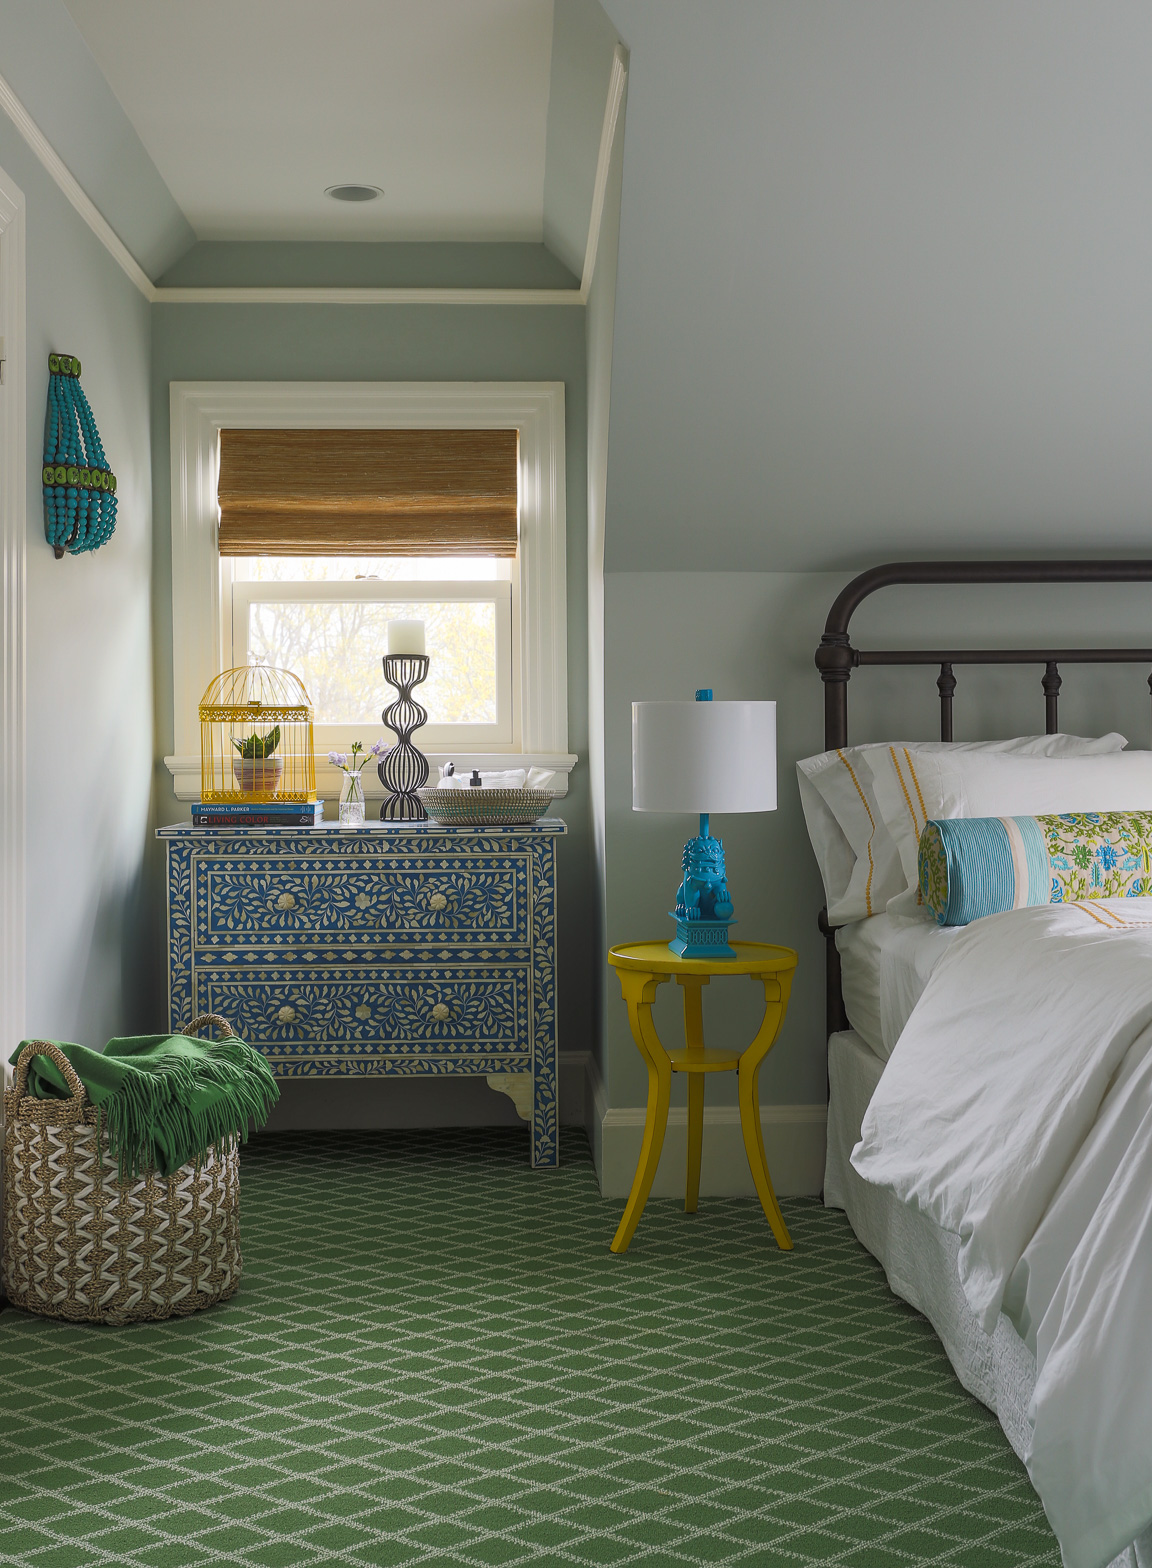 Room Reveal: My Colorful, Airy + Bright Guest Suite | Interiors for Families | Kelly Rogers Interiors